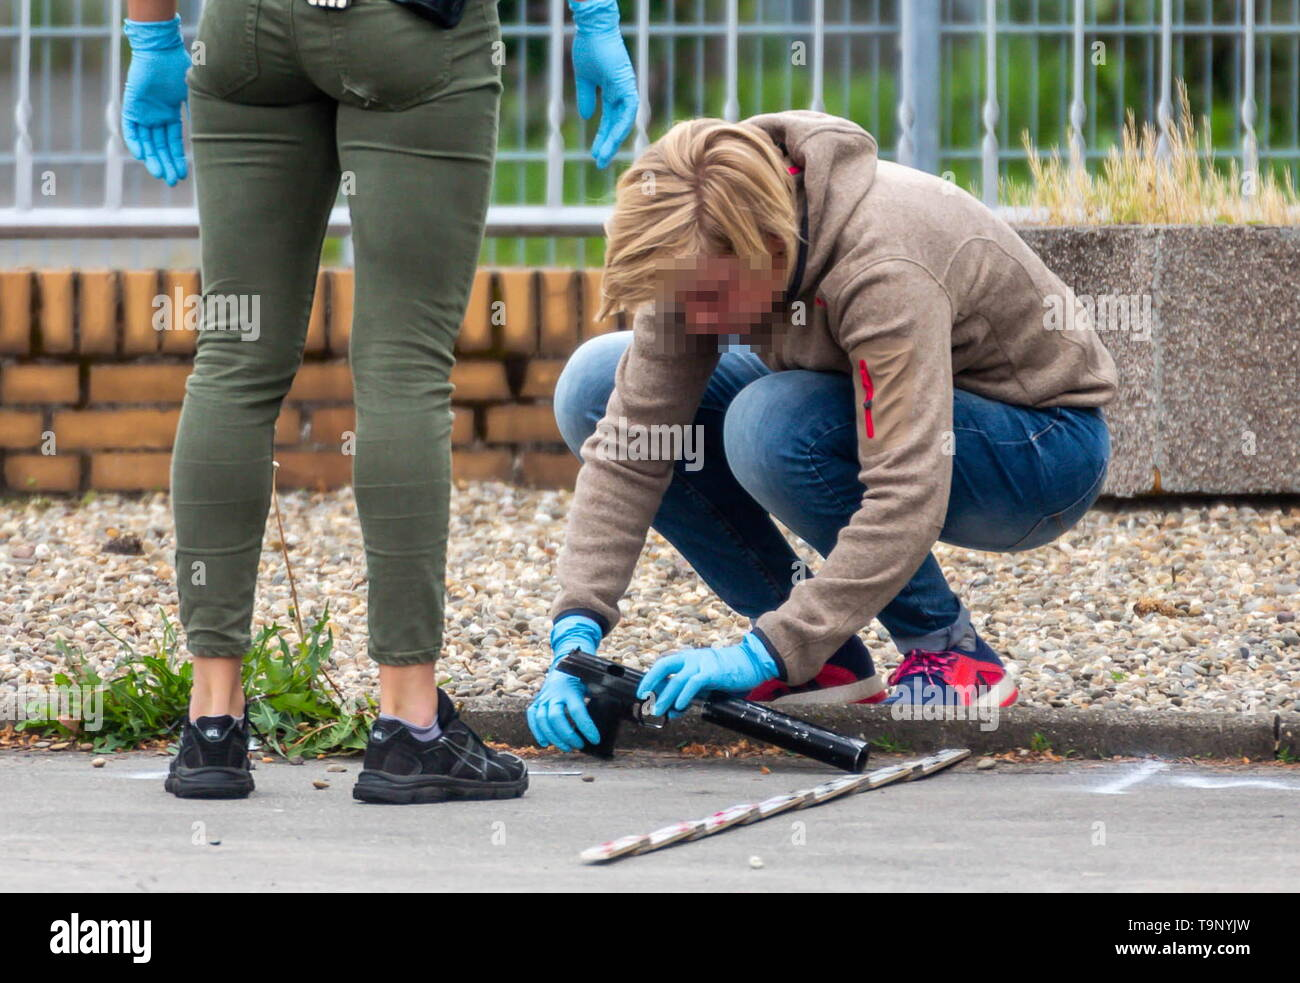 20 May 2019, Hessen, Flörsheim: Police officers secure the suspected murder weapon with which a 34-year-old man was shot after a dispute and became life-threatening. According to initial investigations, the men got into a dispute around 6.30 a.m. in the morning. A police spokesman said that a 54-year-old is said to have shot the younger one at least once. ATTENTION: The police officer was made unrecognisable for reasons of personality rights. Photo: Stenzel/Wiesbaden112.de/dpa - Stock Image